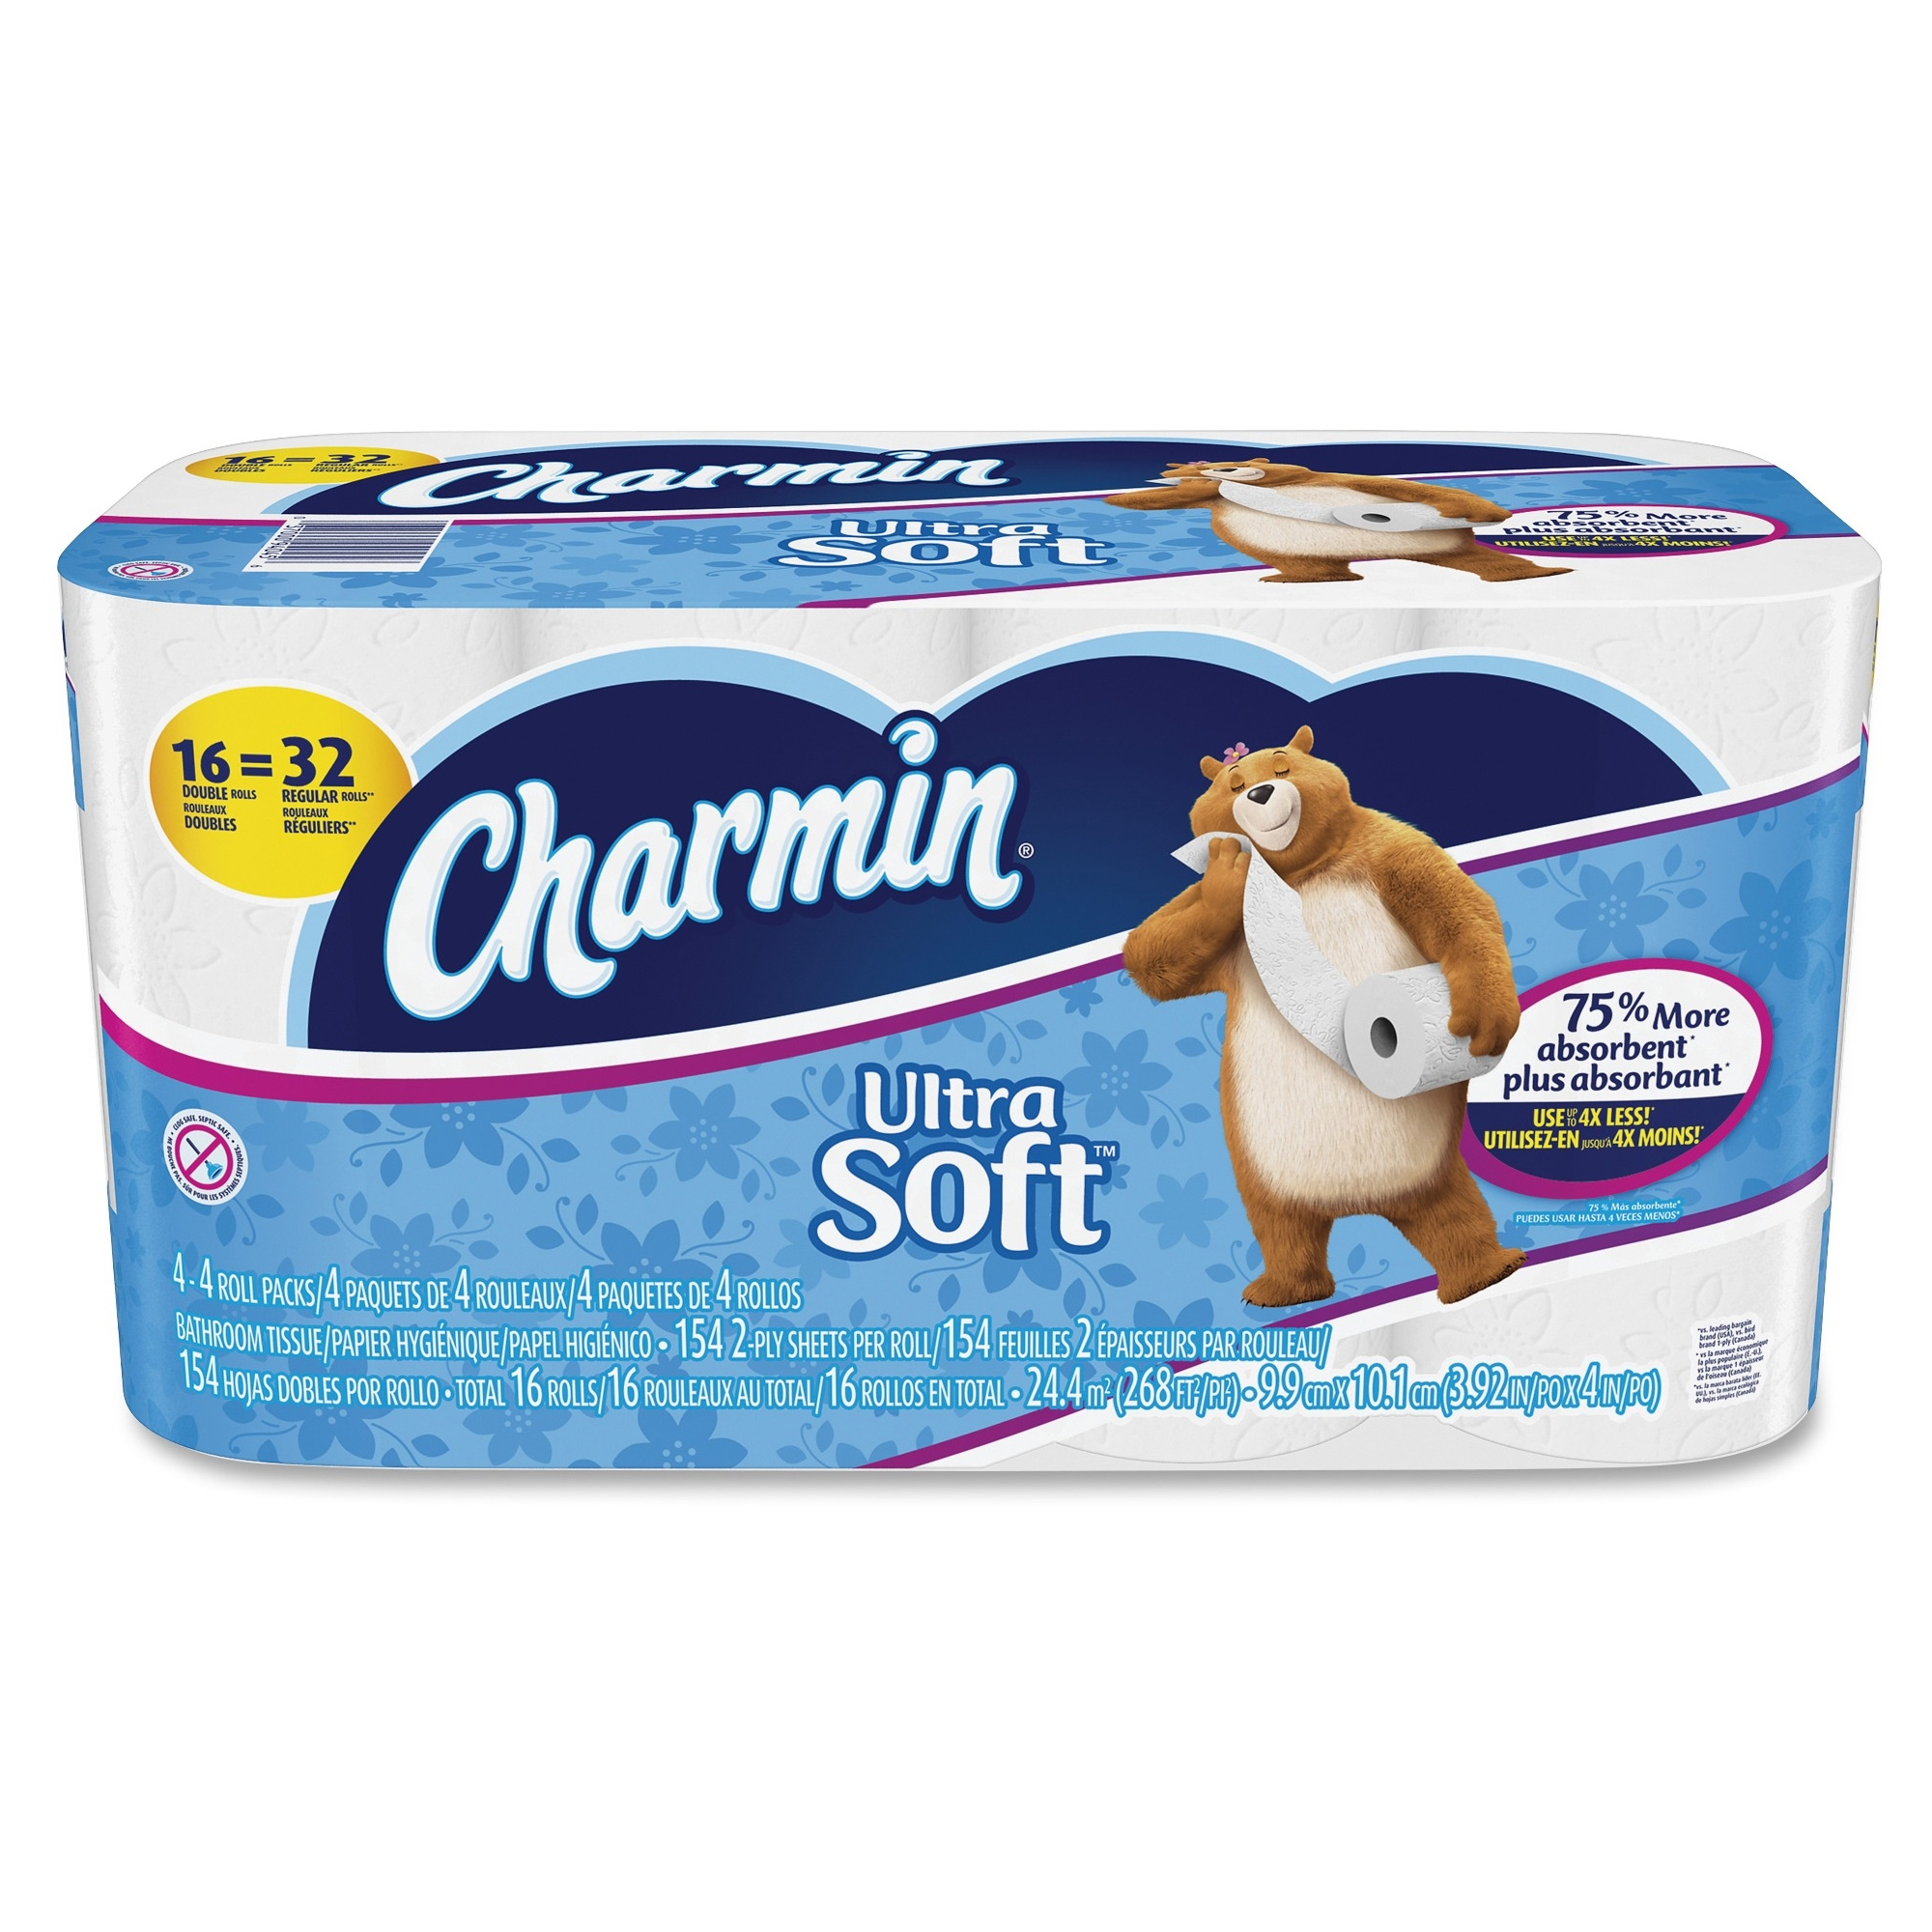 Charmin Ultra Soft Bathroom Tissue - 2 Ply - 16 Roll[s] Per Pack - White - Soft, Absorbent, Clog-free, Anti-septic - For Bathroom, Toilet - 16 / Pack (94045ct)